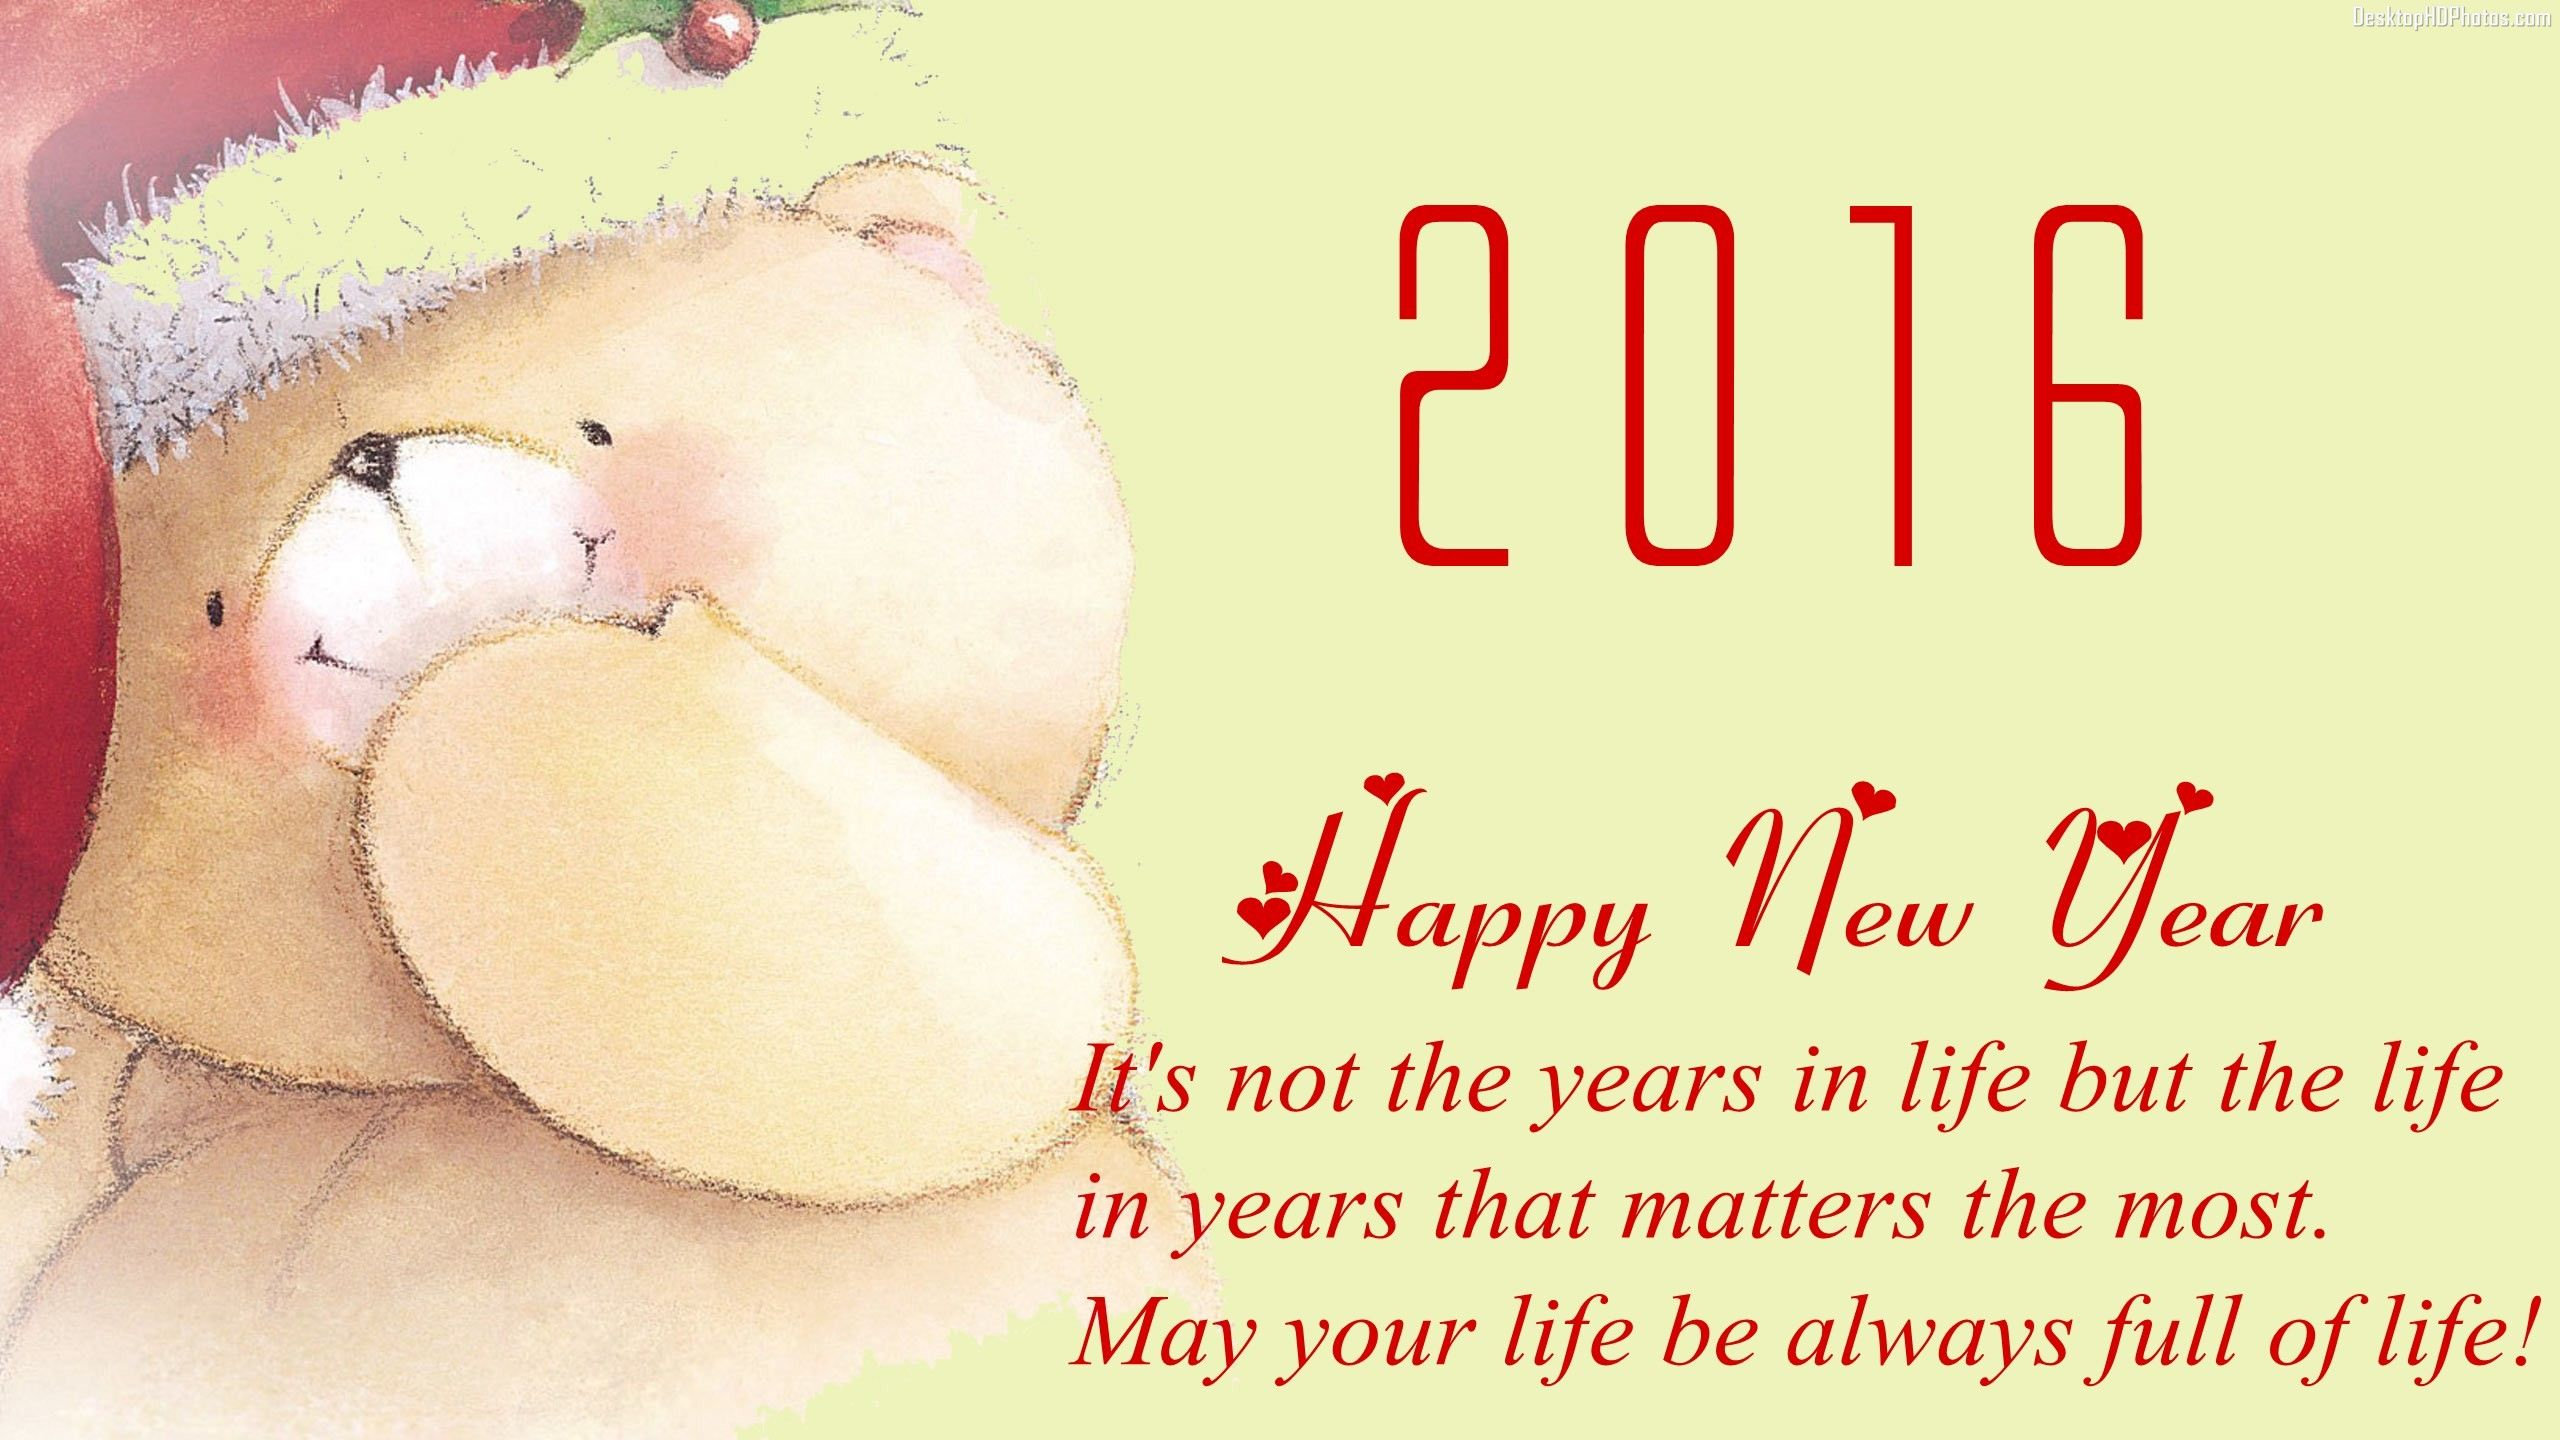 Small Crop Of Happy New Year 2016 Message